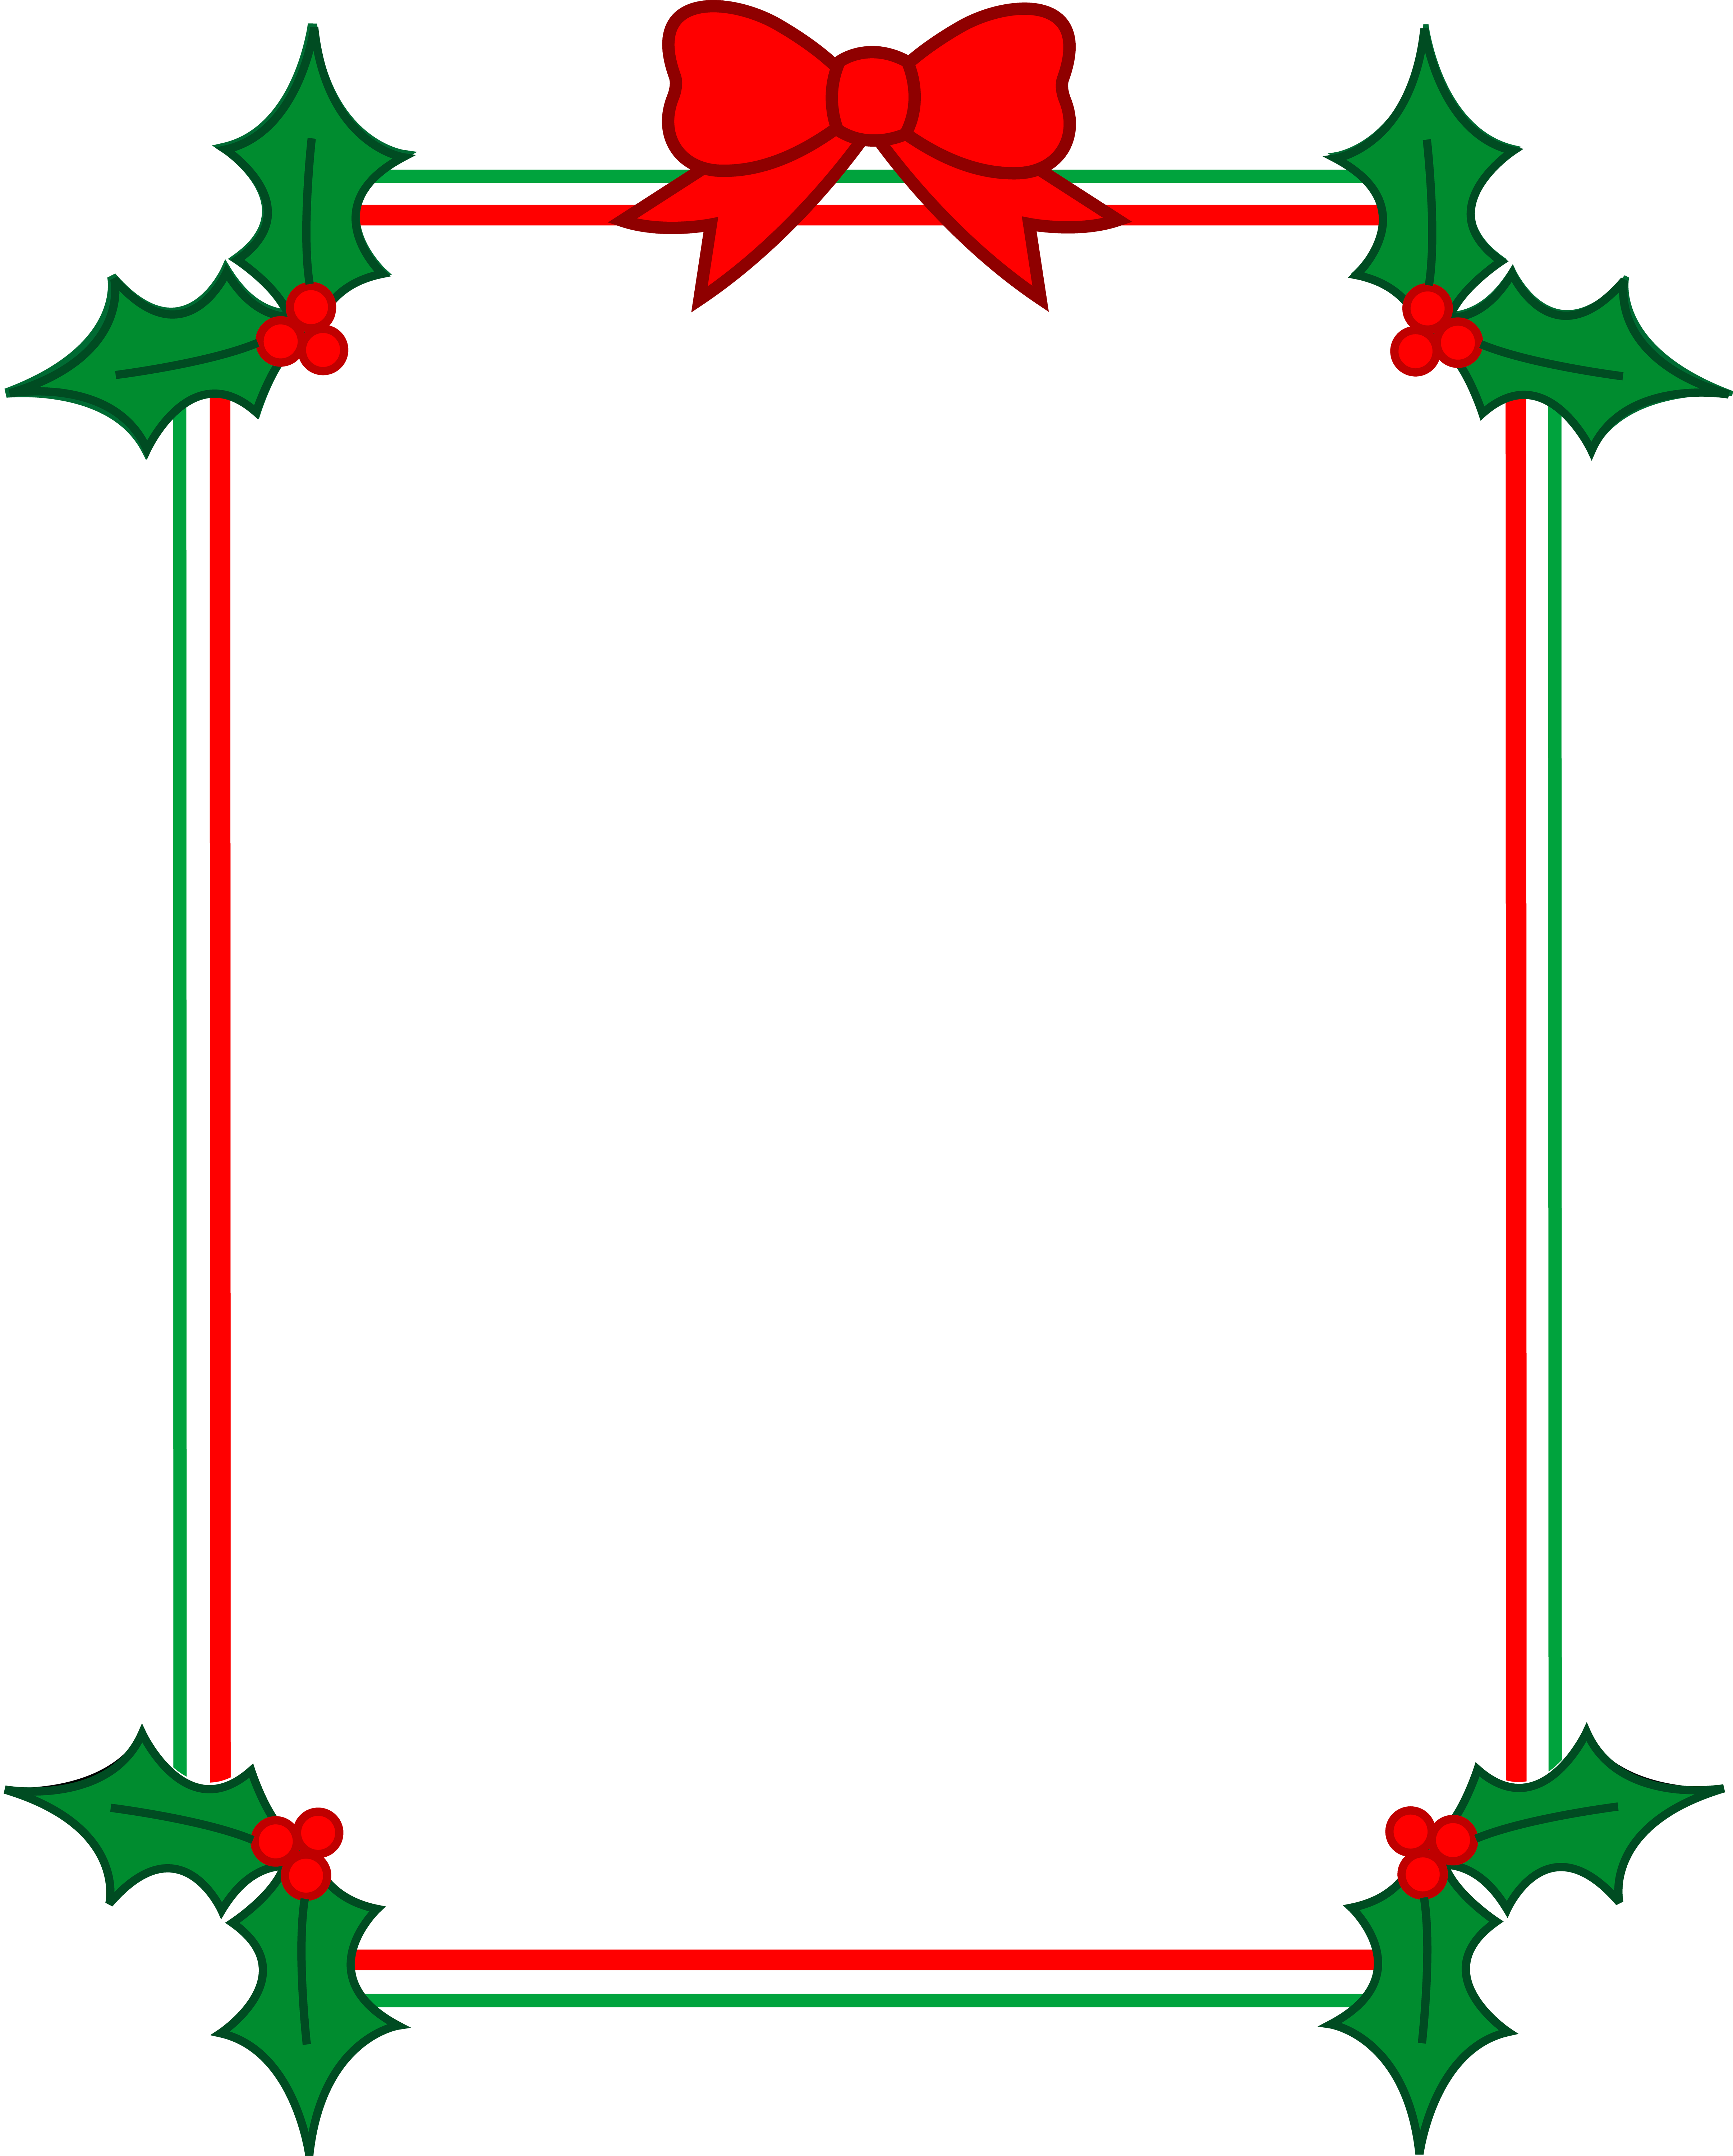 I Created A Binder With The Following The Night Before Christmas